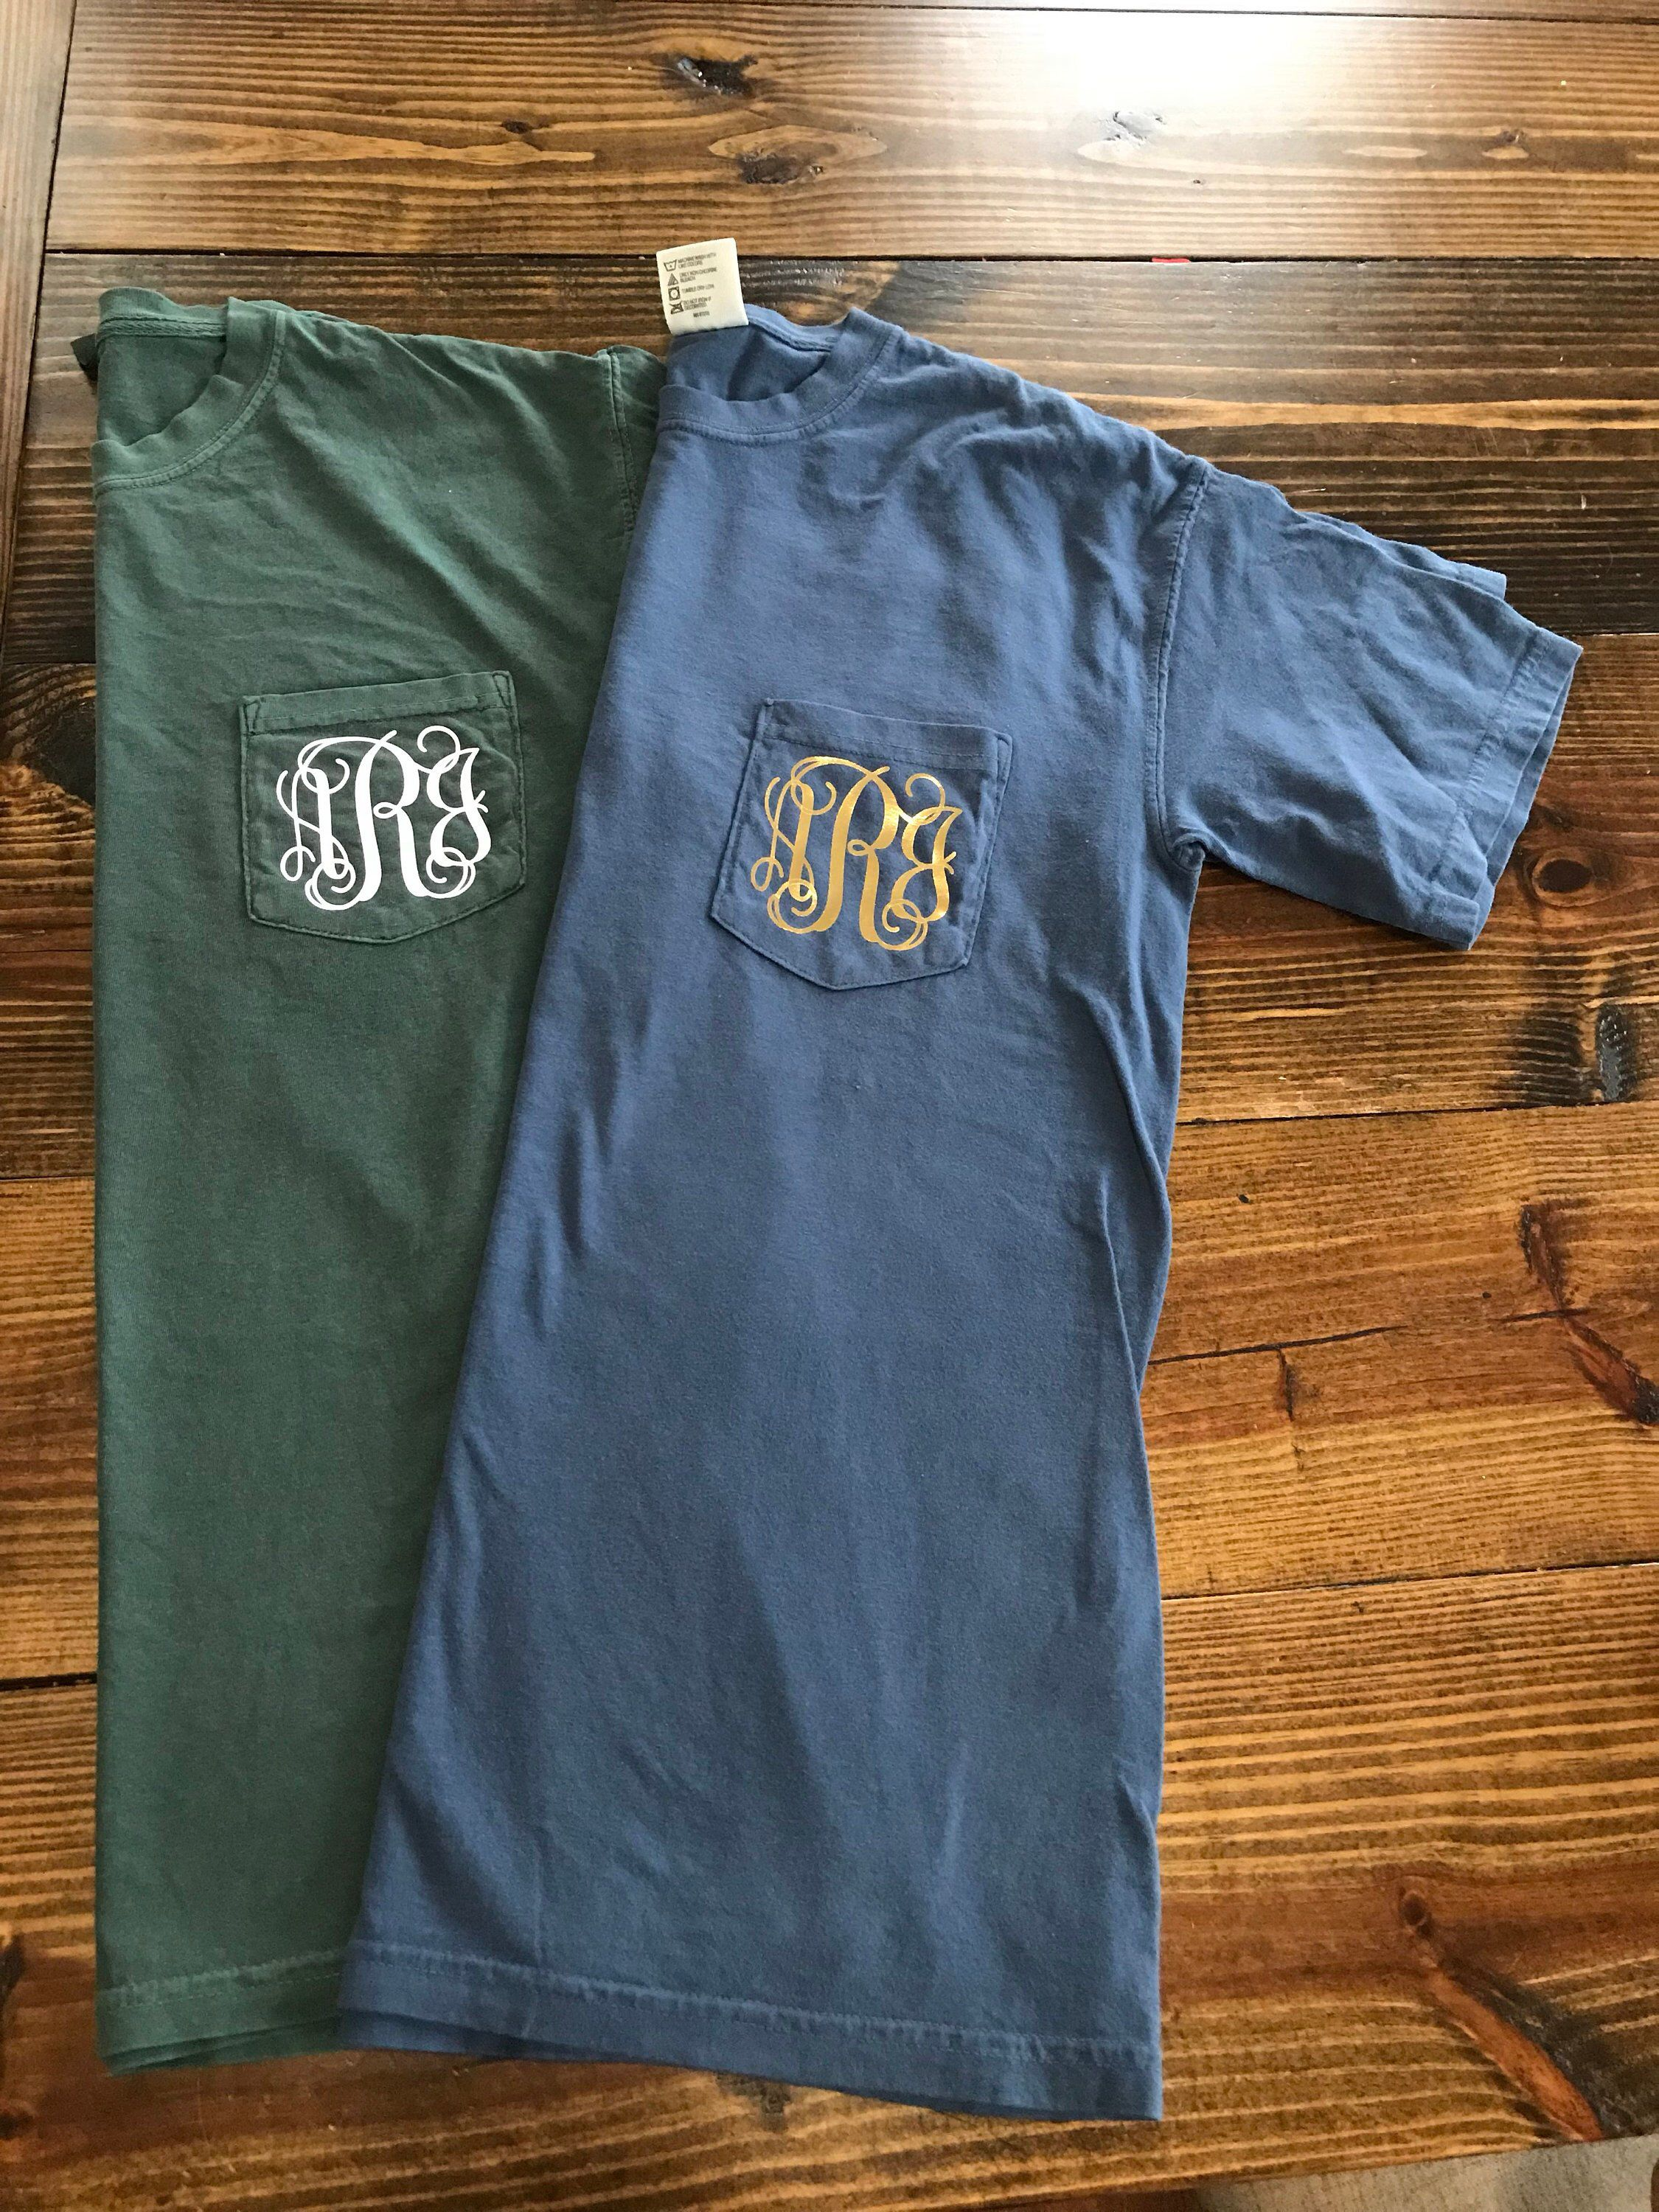 065a15c1d7a48 Pin by Amber Rachford on My Style in 2019 | Monogram pocket tees ...